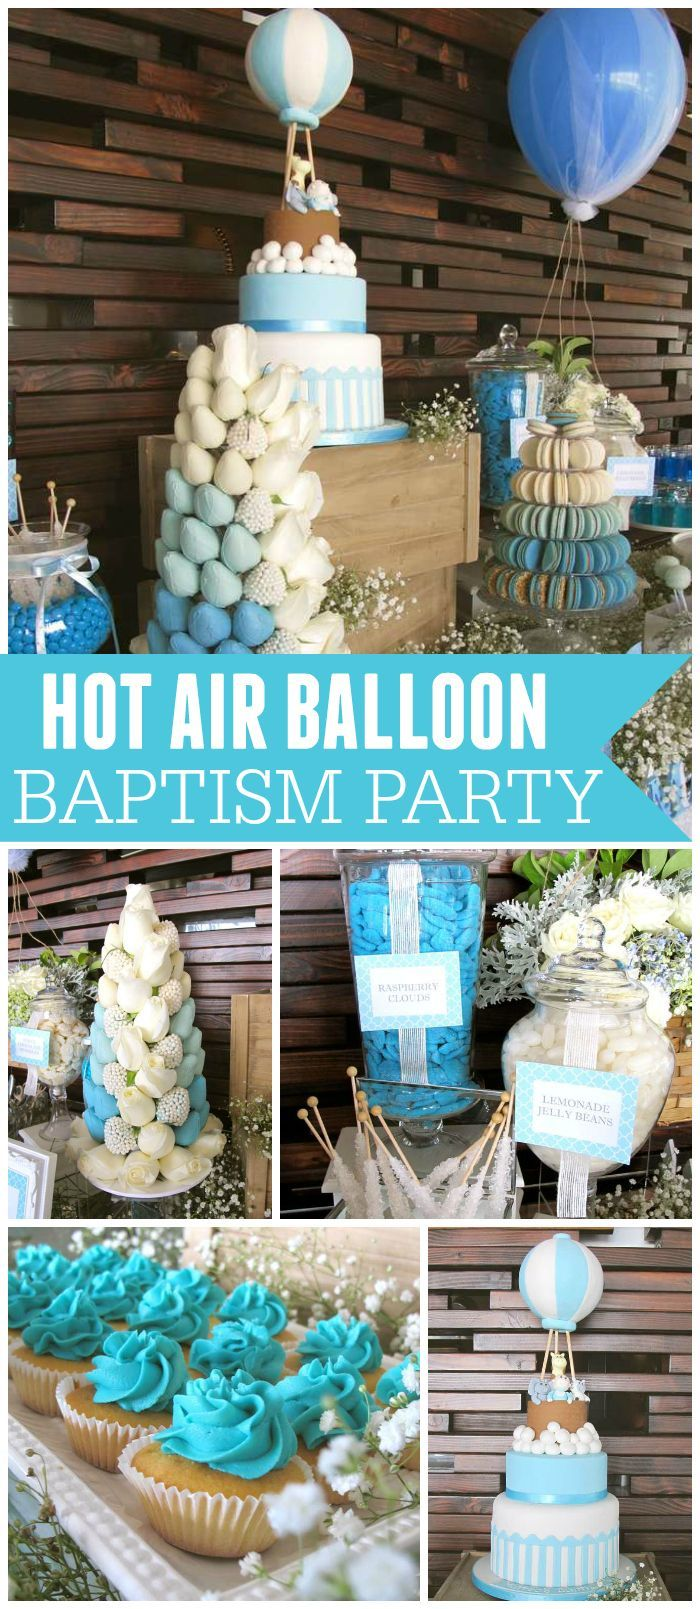 78 best images about hot air balloon party ideas on pinterest flies away birthday party ideas - Baptism party decoration ideas ...